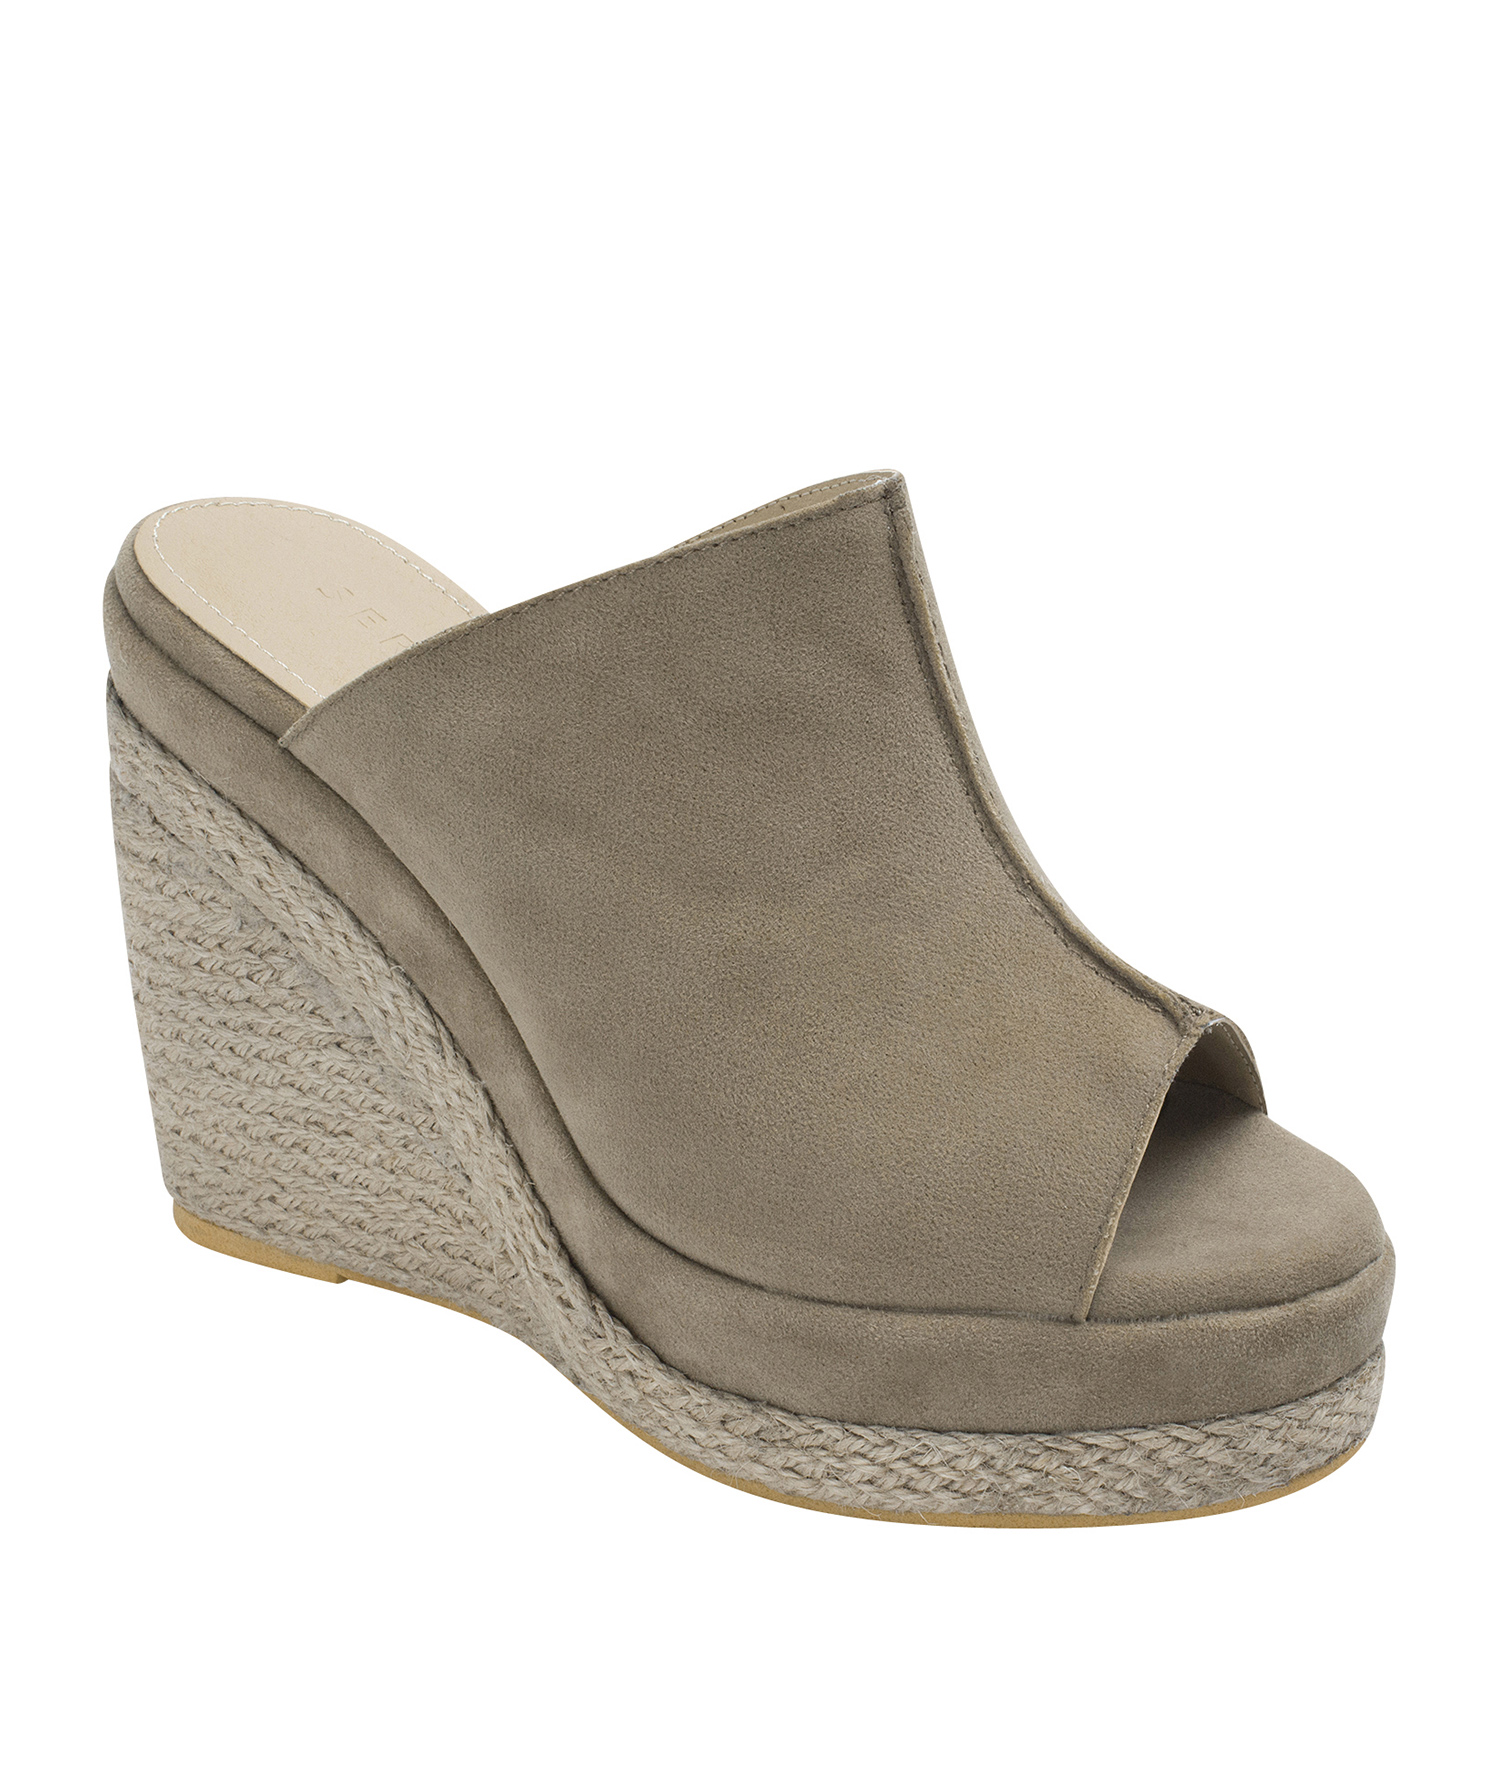 49e1ed754df Faux Suede Espadrille Wedge Mule Sandals